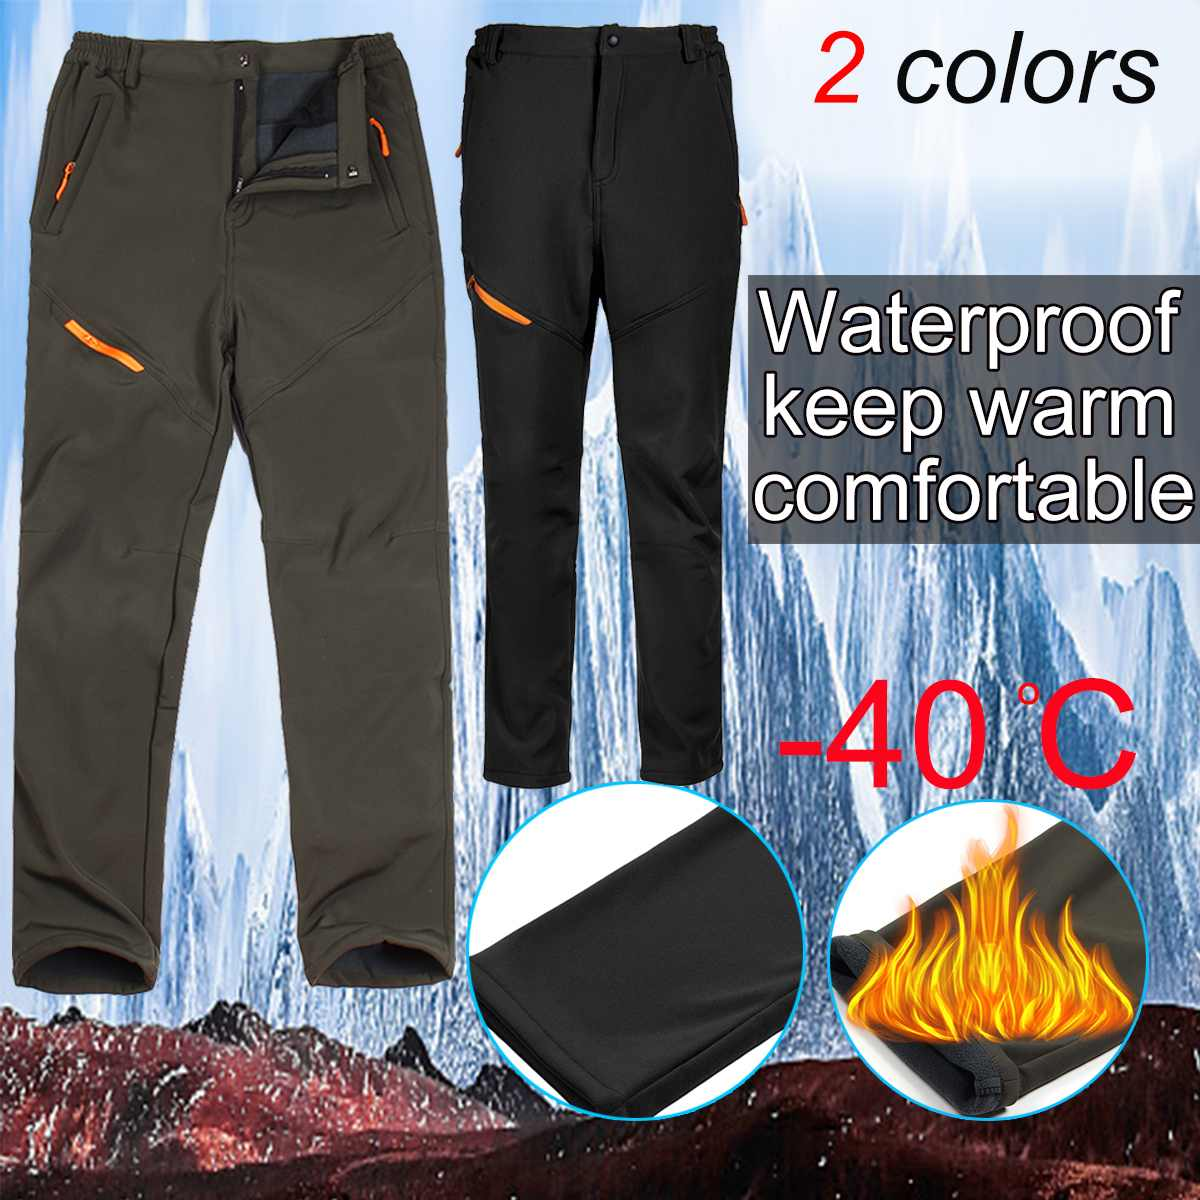 Men's Plus Velvet Thick Autumn And Winter Soft Shell Pants Trousers Outdoor -40 Degree Snow Ski Pant Snowboard For Male / Female